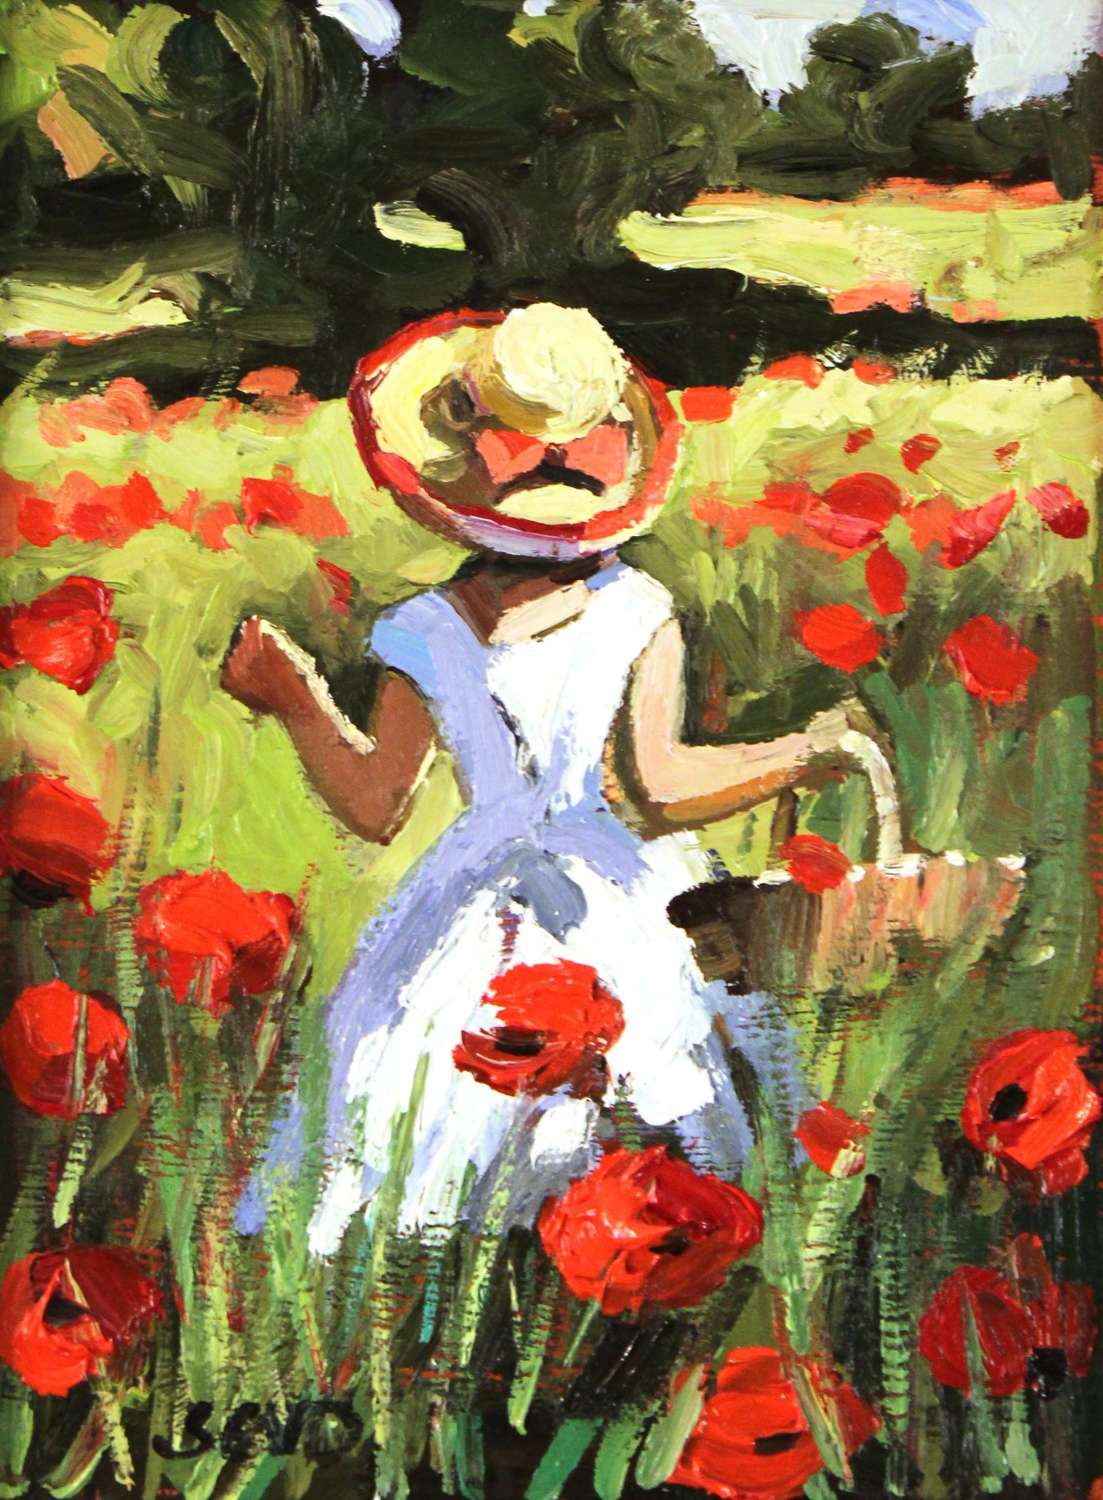 SHERREE VALENTINE DAINES - Oil on Canvas